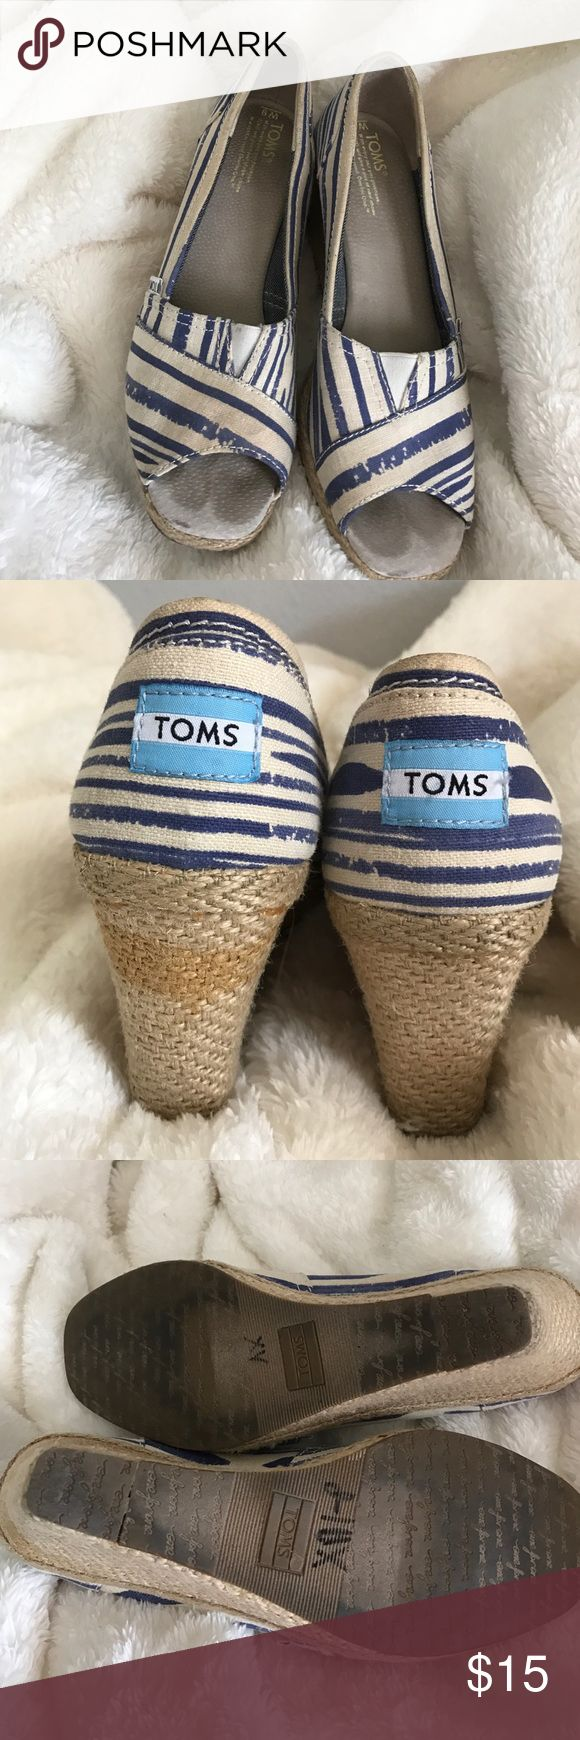 TOMS wedges Tom wedges. Preloved. Need a cleaning but I'm afraid to make it worse lol they still have lots of life left. TOMS Shoes Sandals